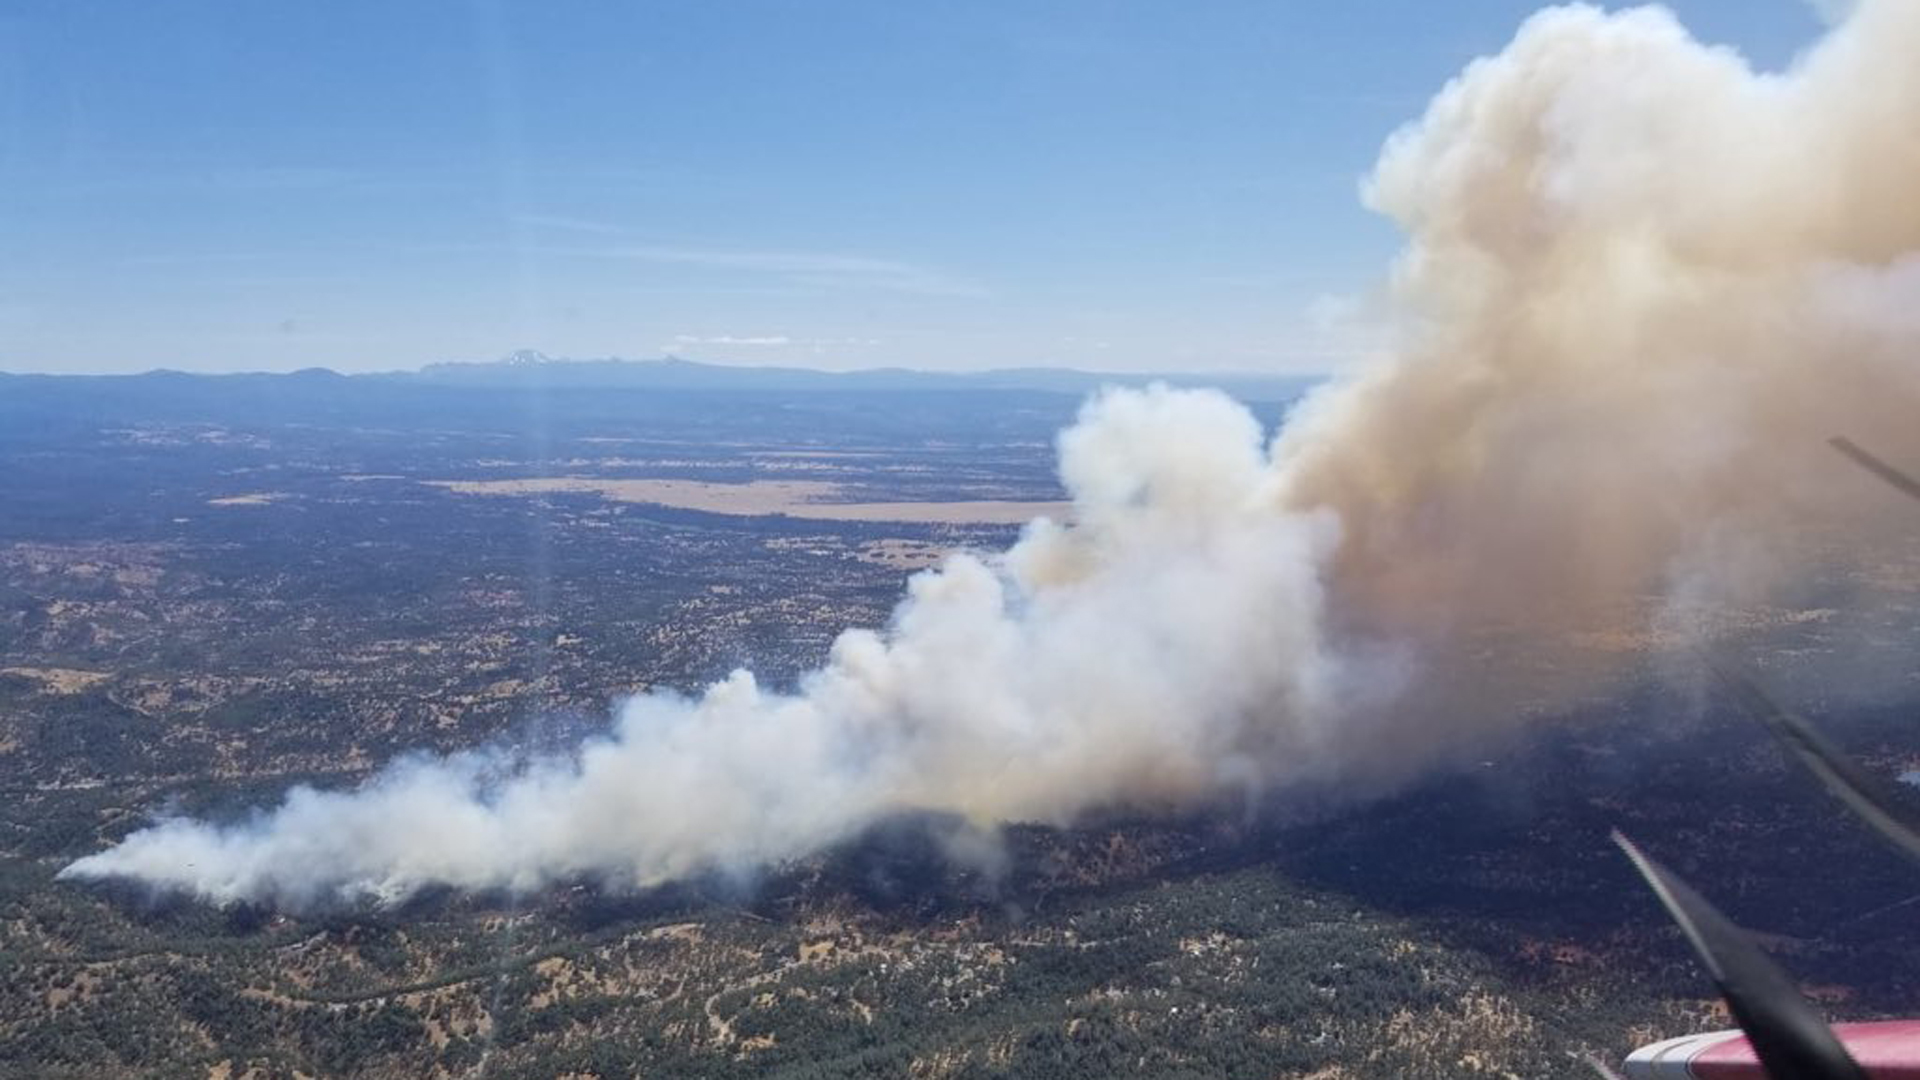 The Mountain Fire burning Aug. 22, 2019, near Redding is seen in an aerial photo provided by Cal Fire.